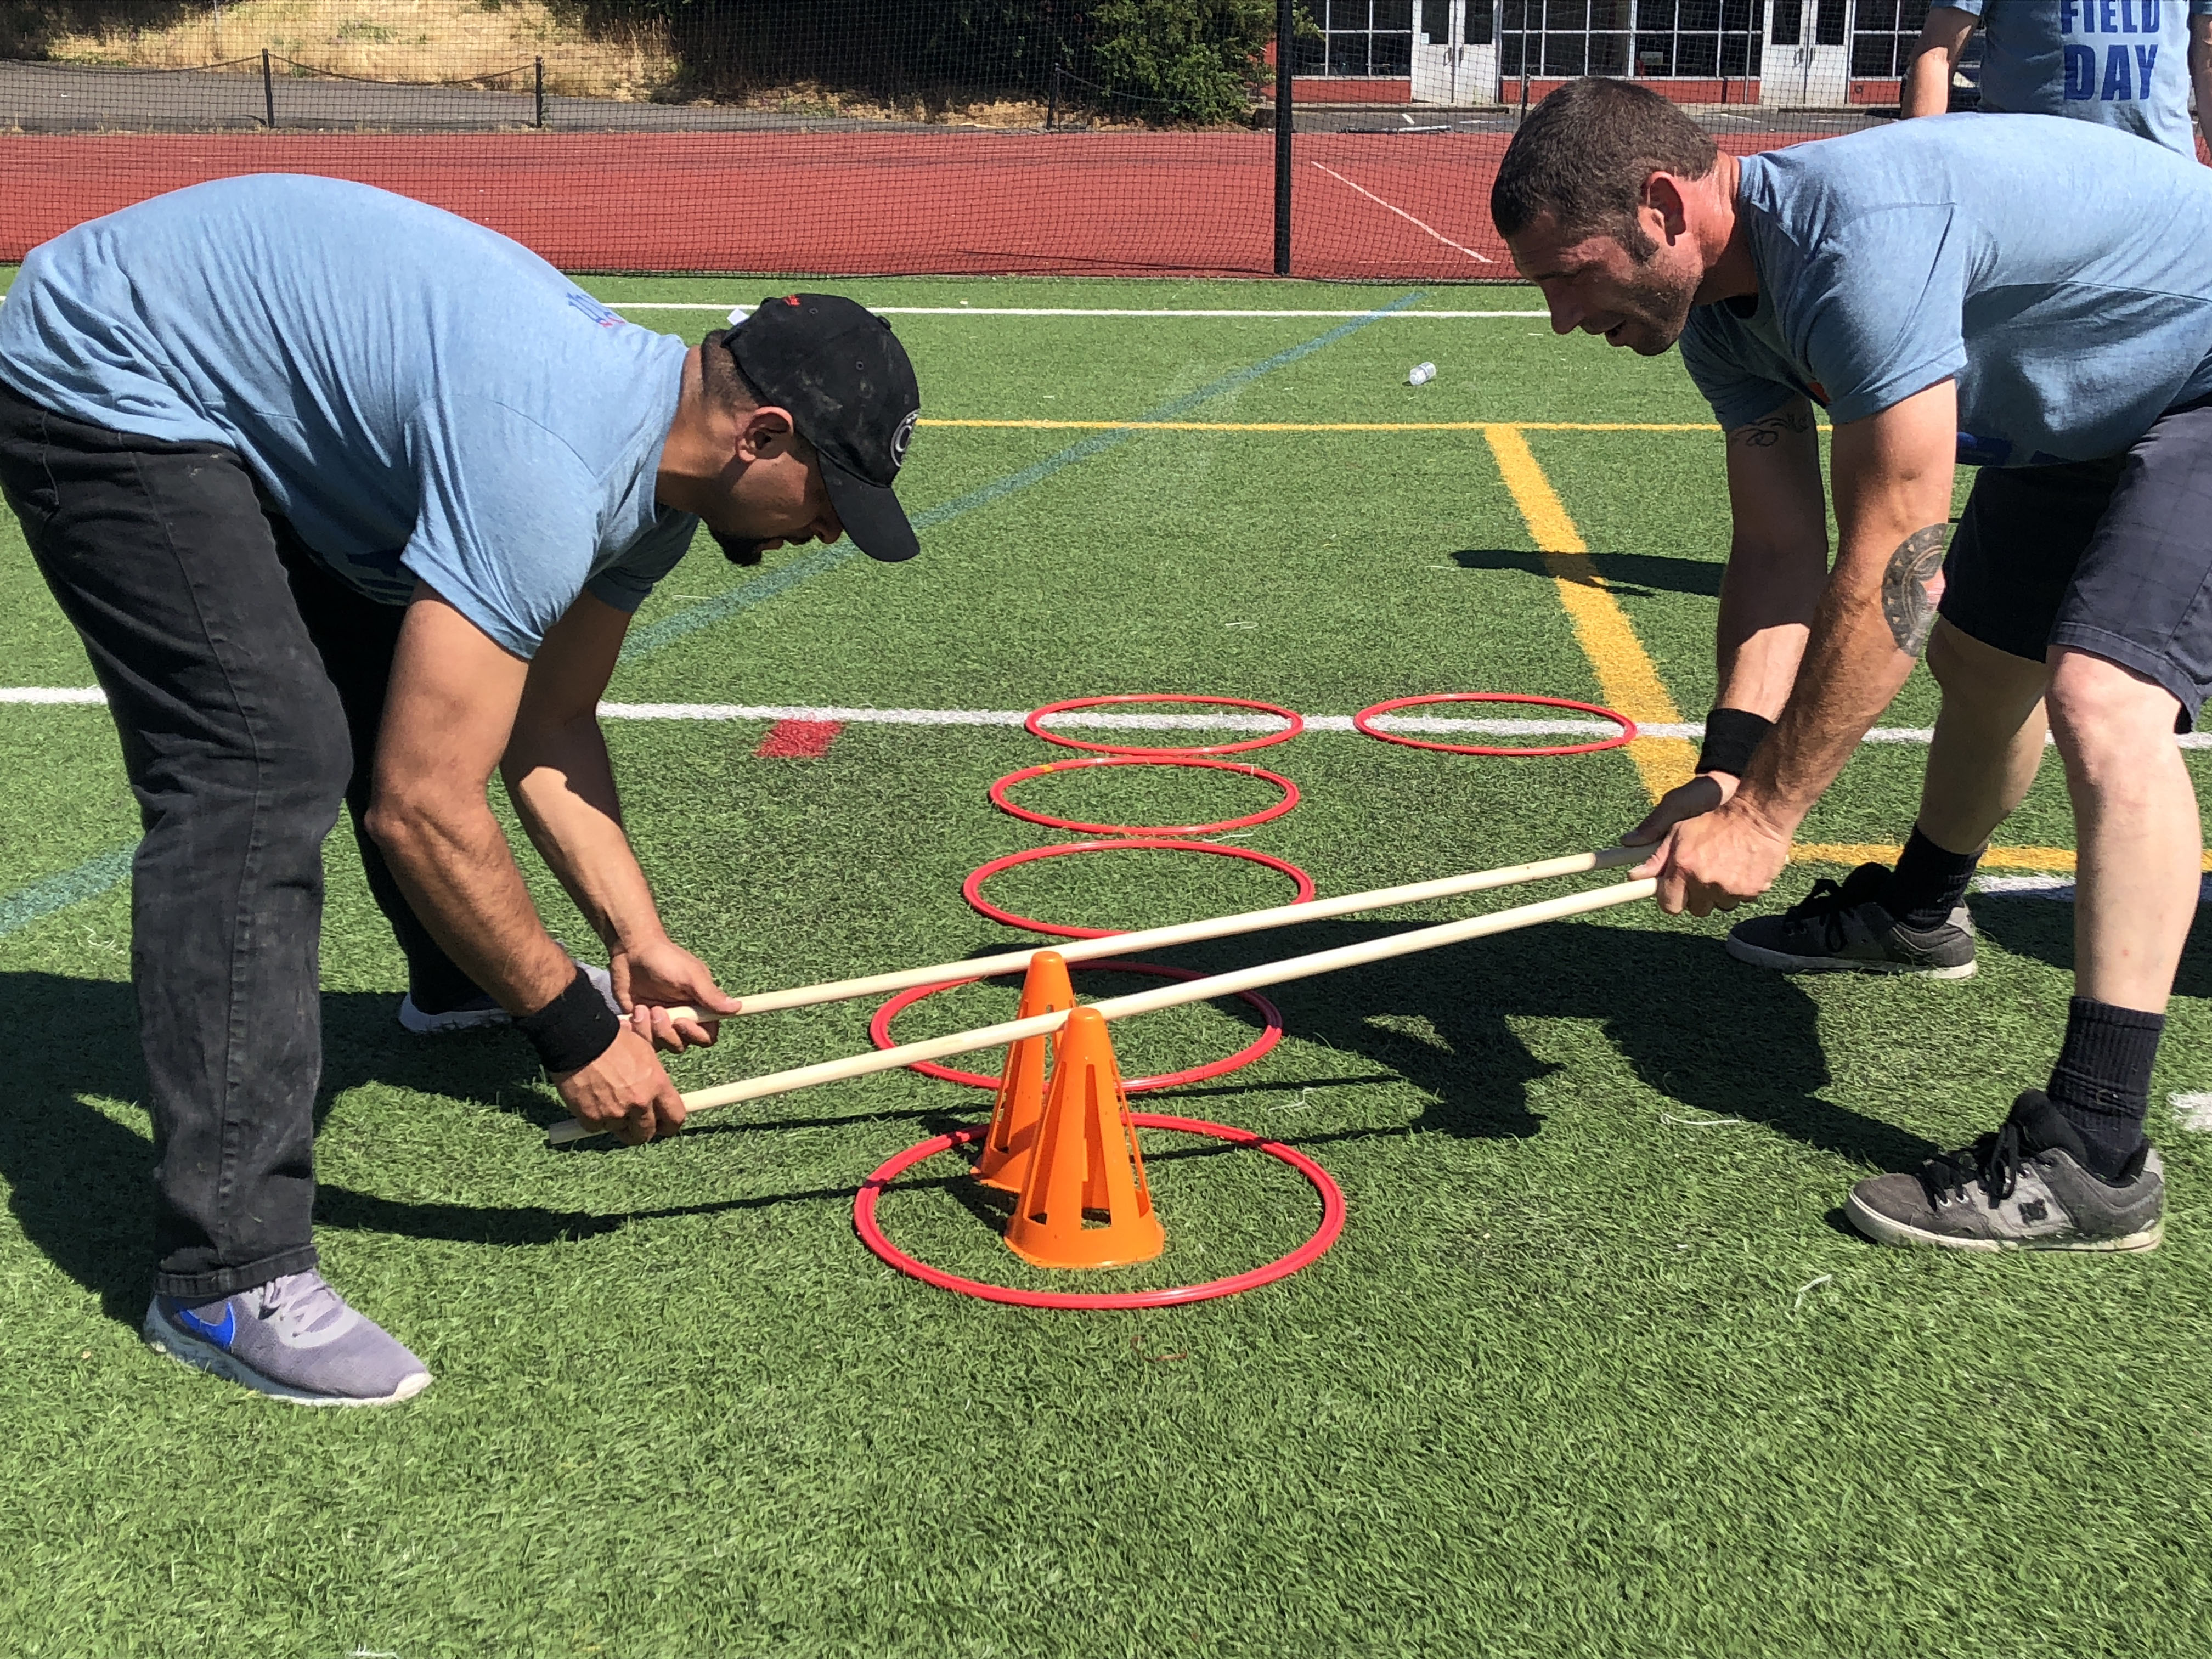 two R&H employees doing field day activities on the football field